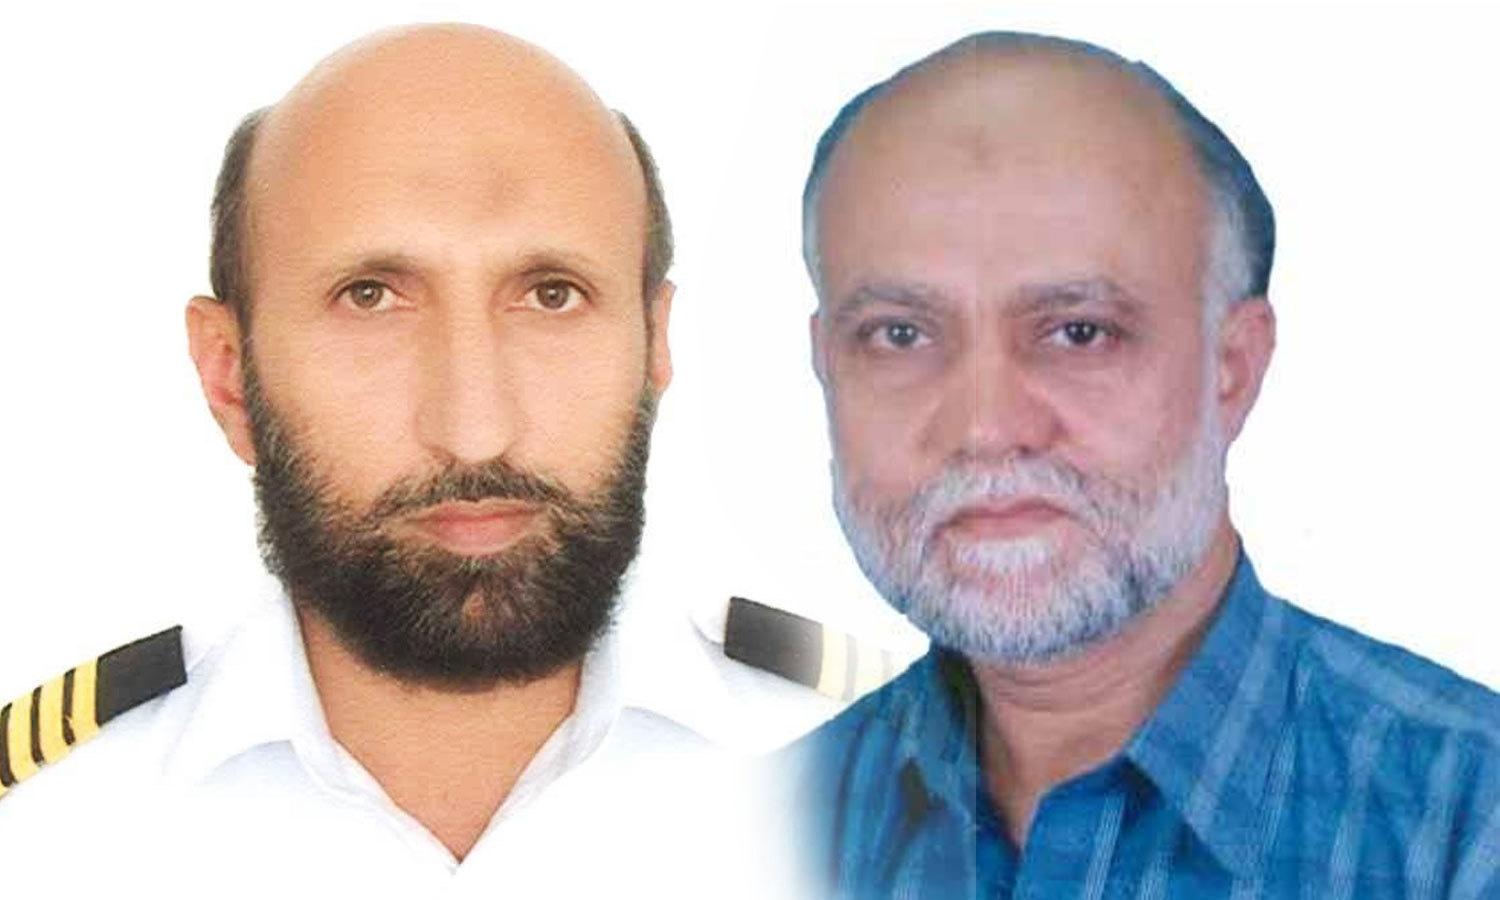 Saleem Akbar (L) and Inayat Raza (R), the two PIA employees who lost their lives during the protest. ─ Photo courtesy: Twitter